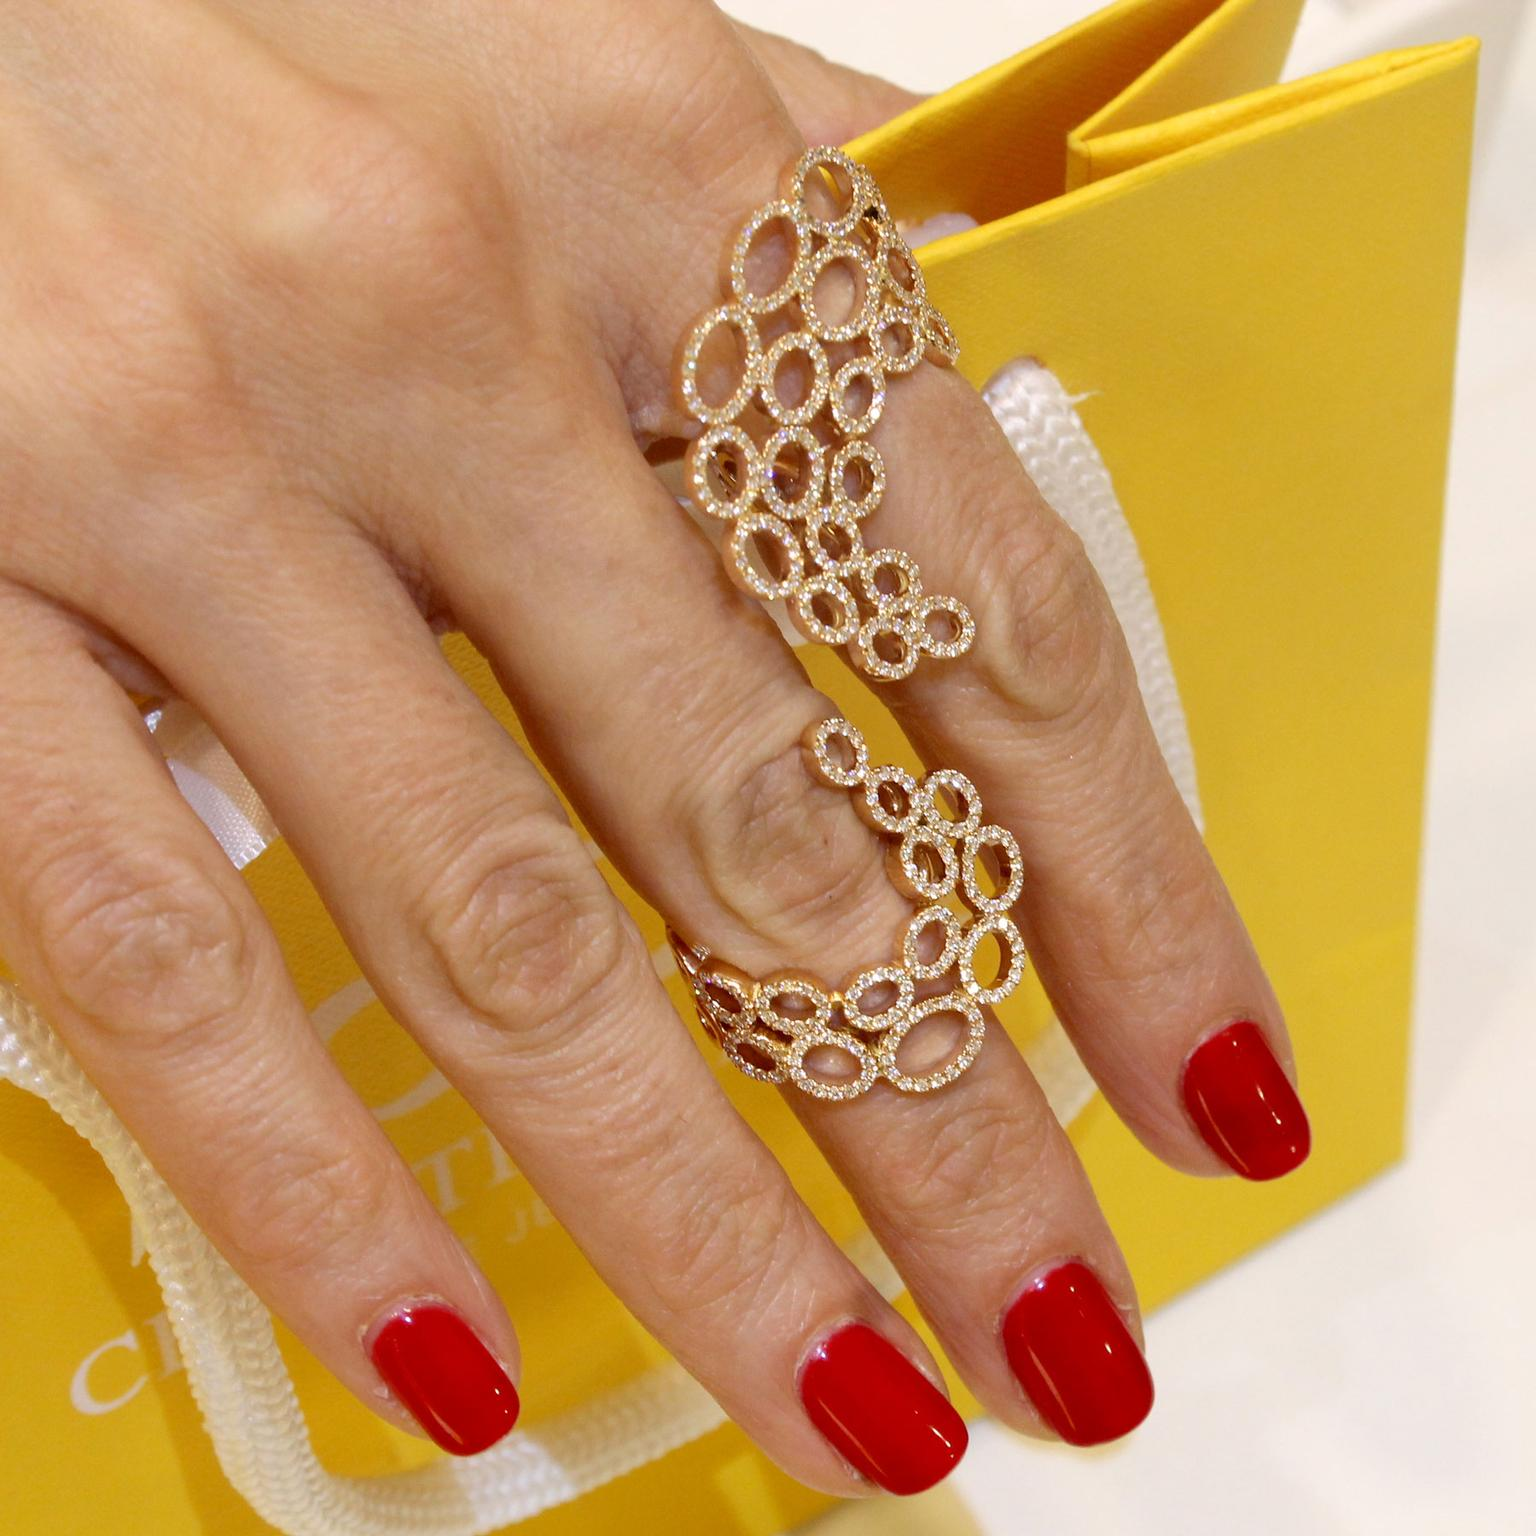 Christina Debs Lace rings